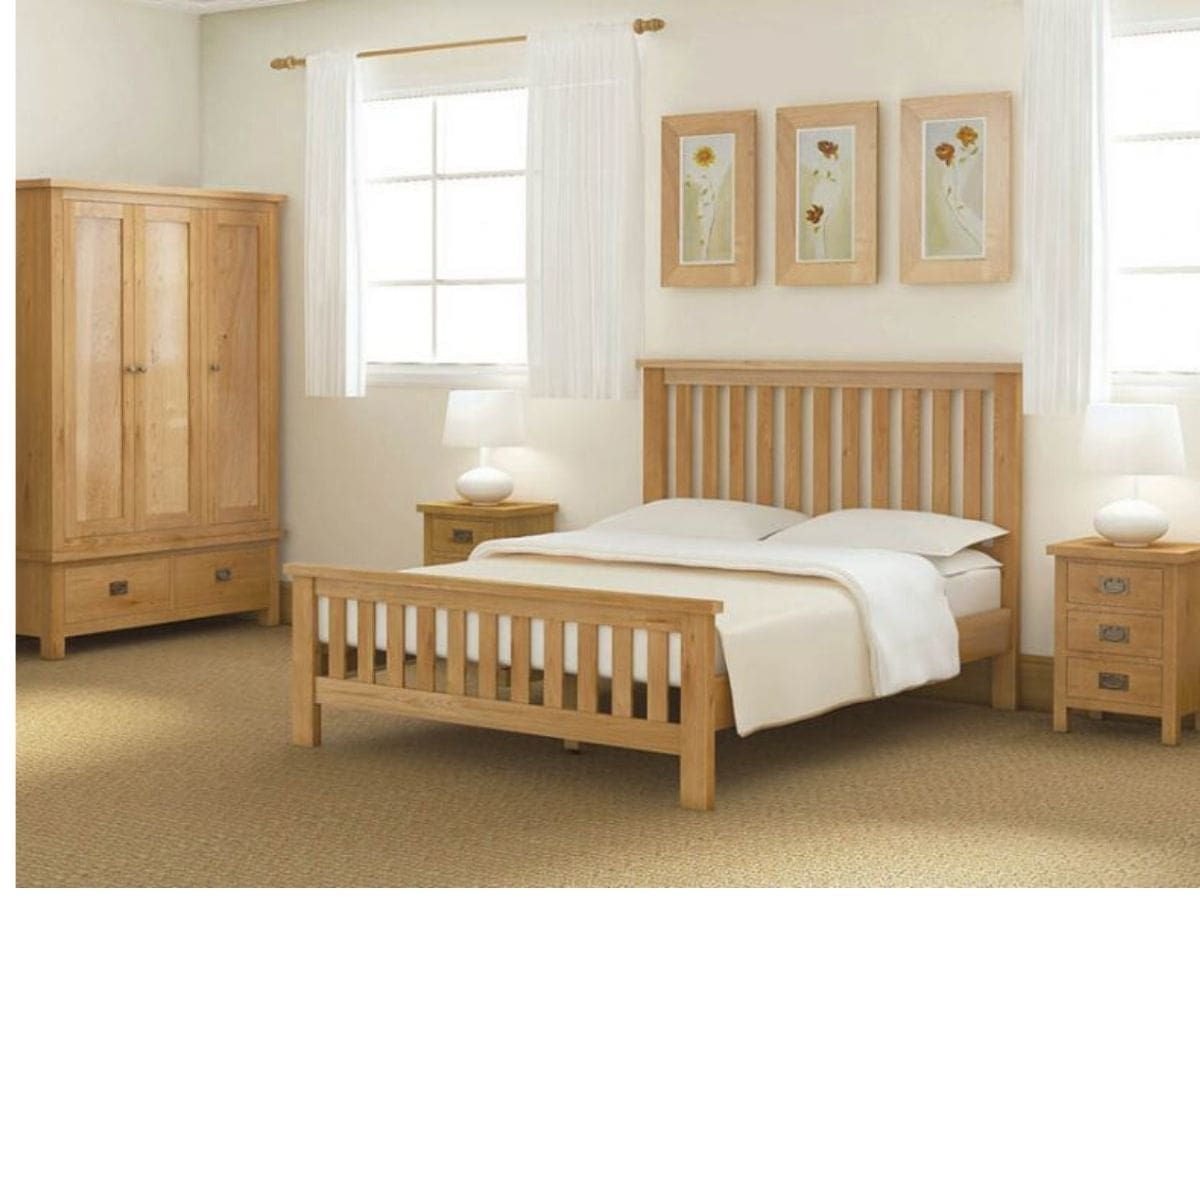 Sonia 3' Low Bed Frame